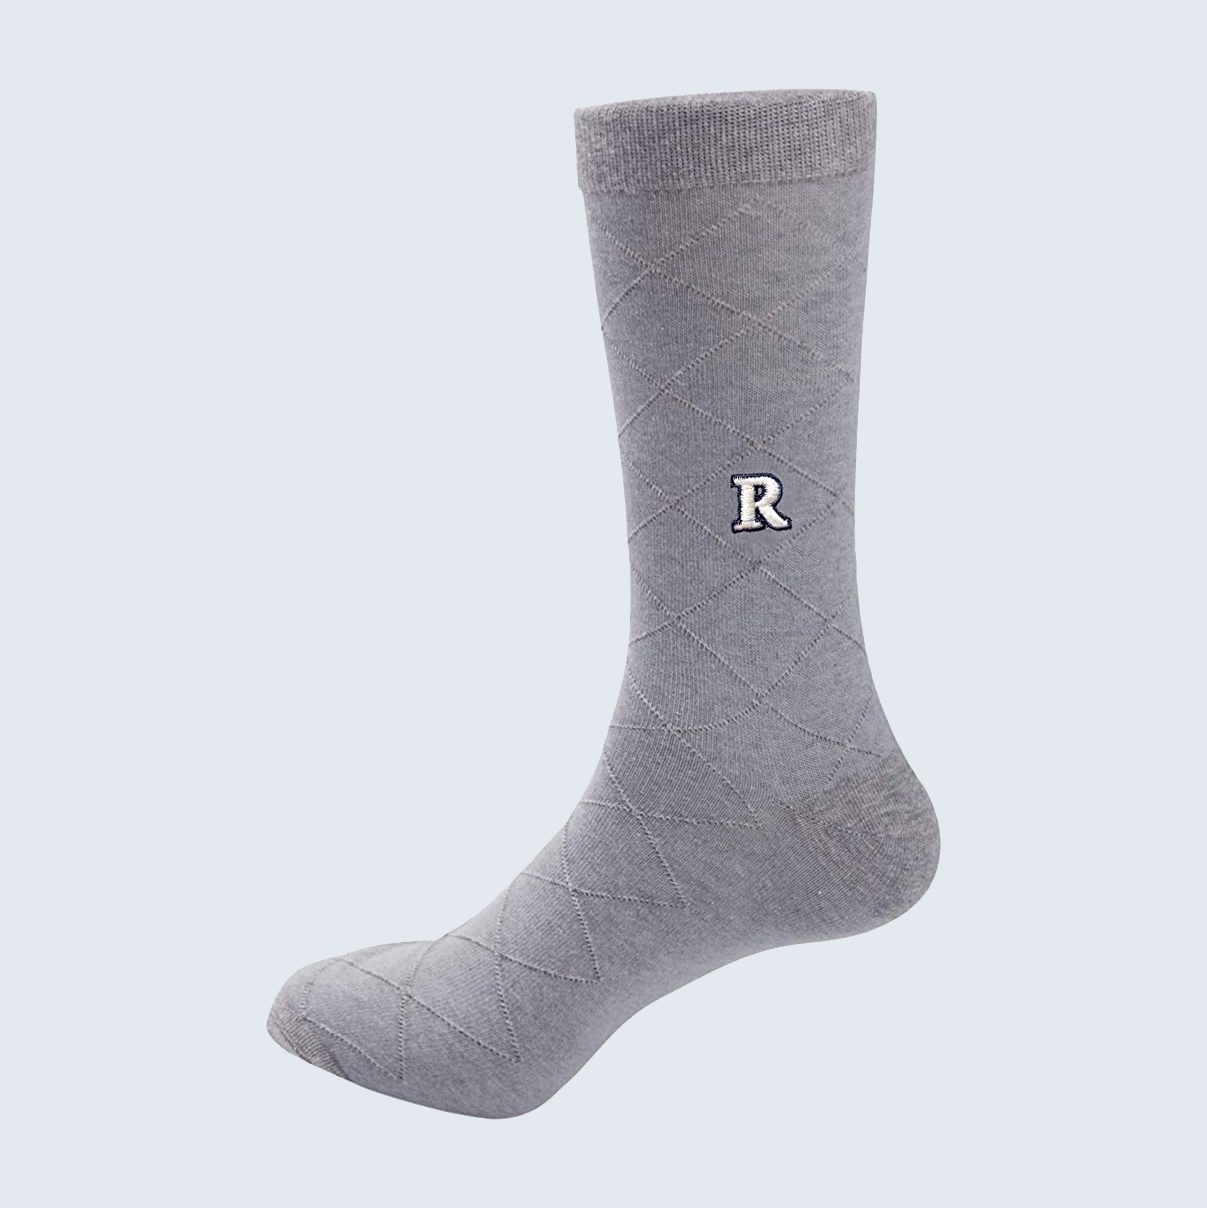 Custom initial socks for Father's Day